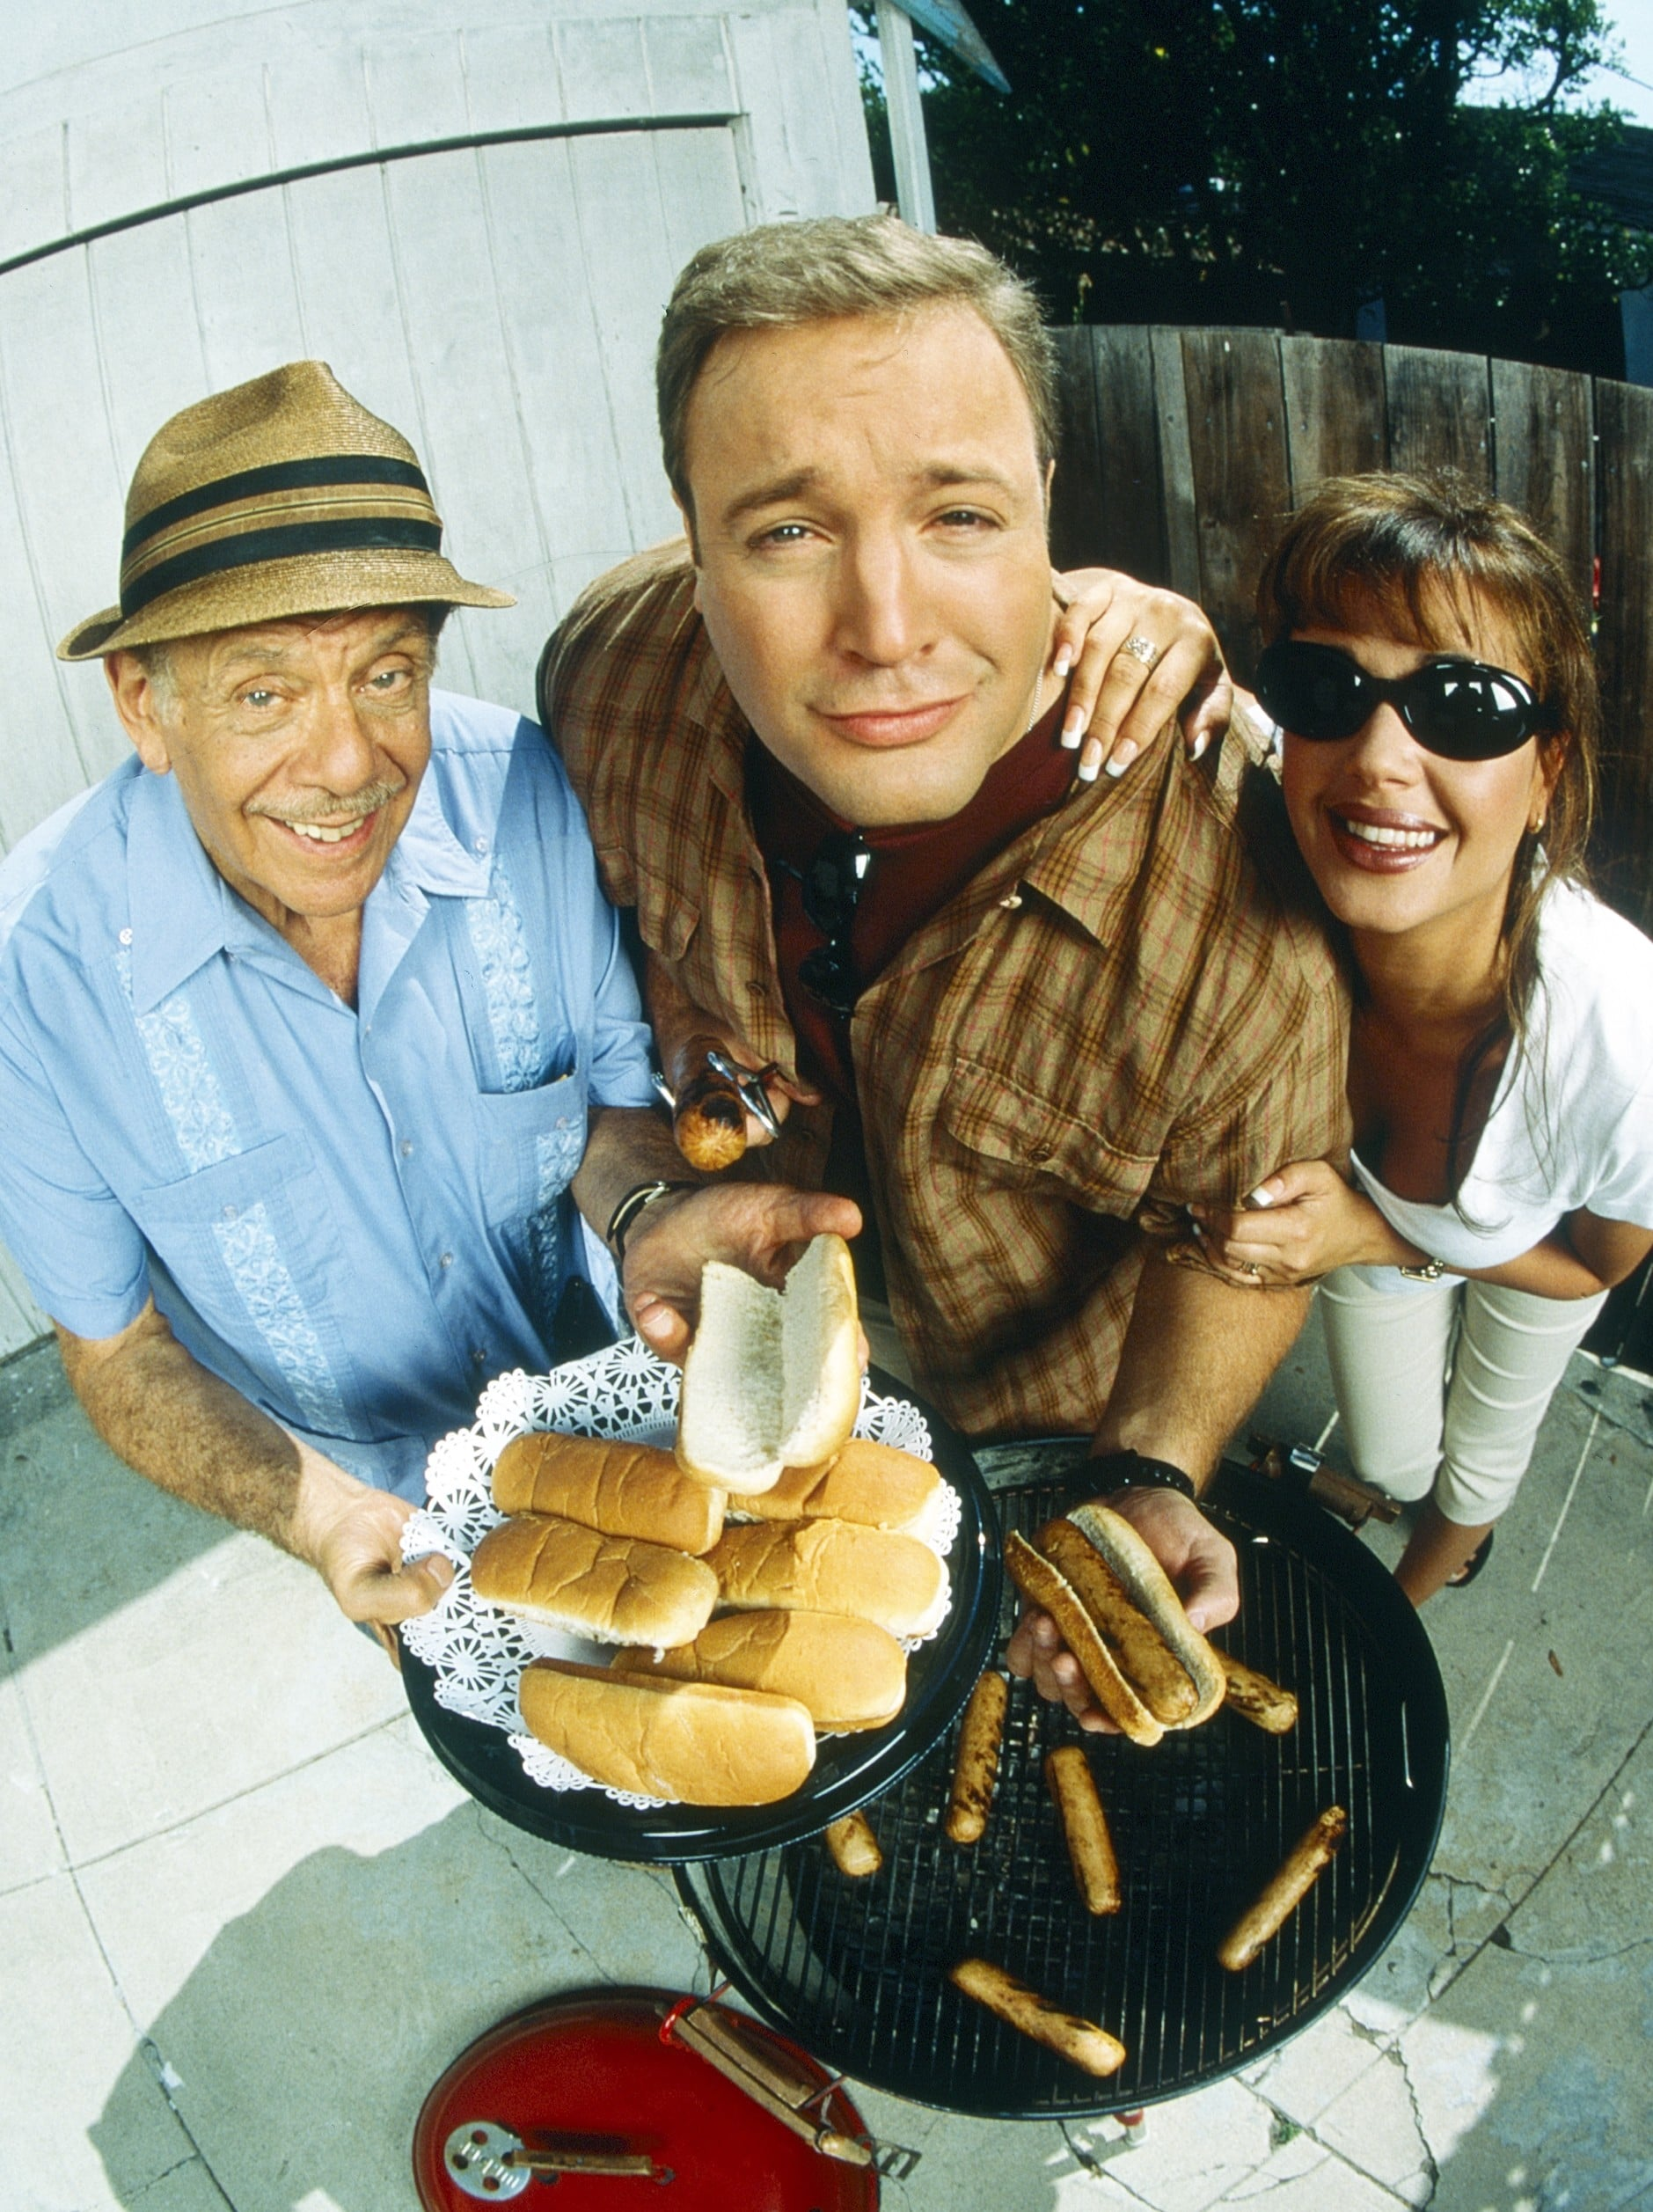 THE KING OF QUEENS Jerry Stiller, Kevin James, Leah Remini